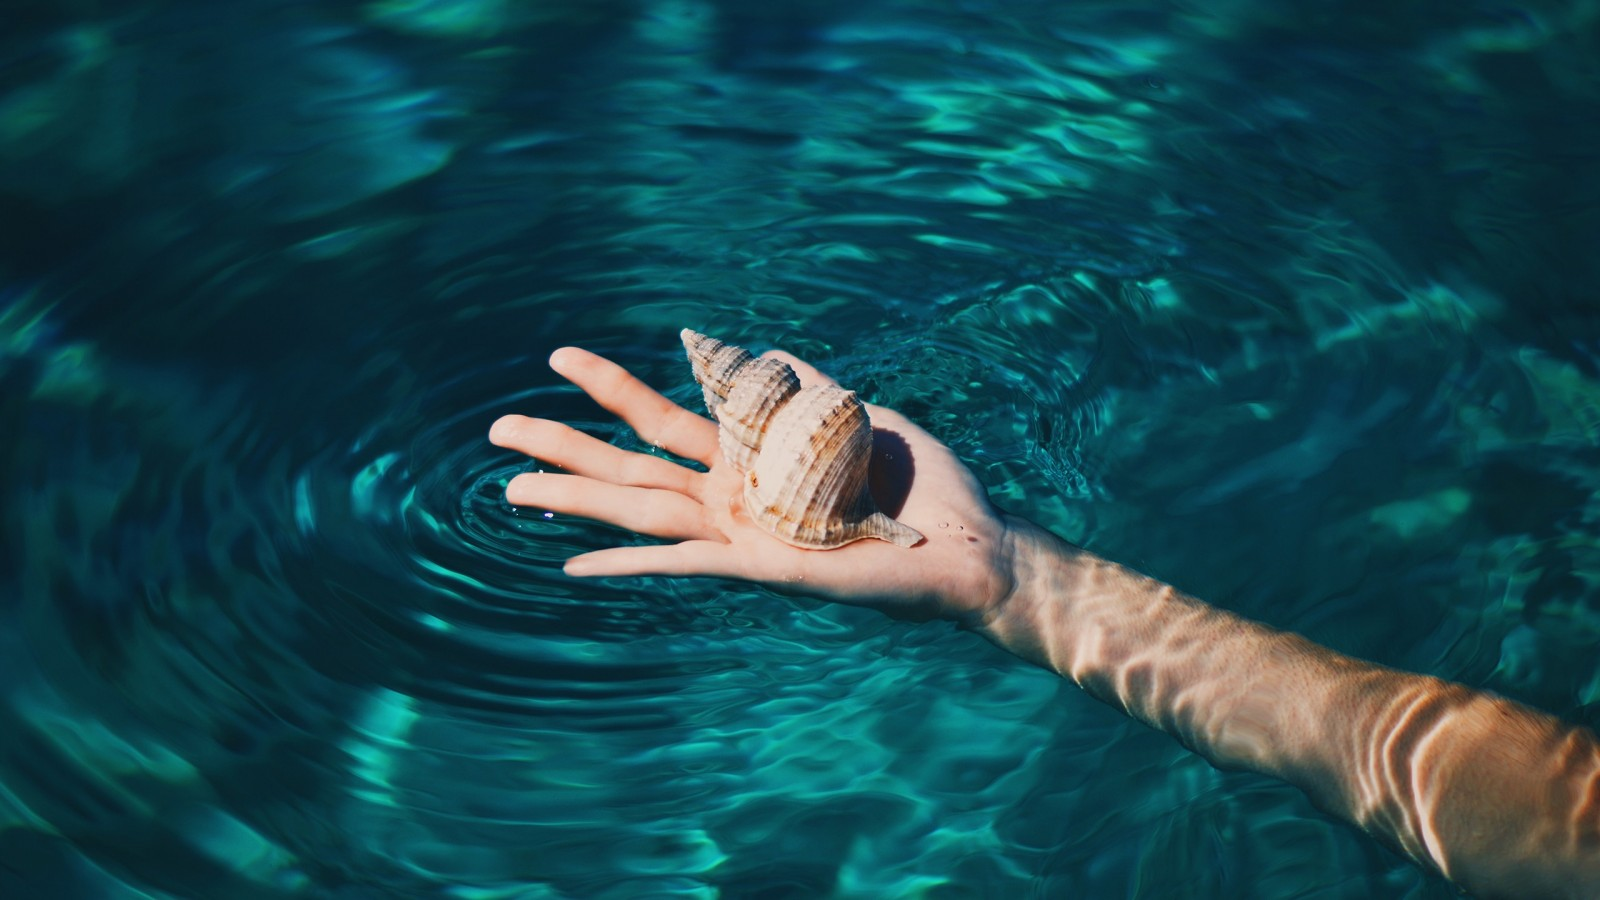 clear water hand wallpaper 70239